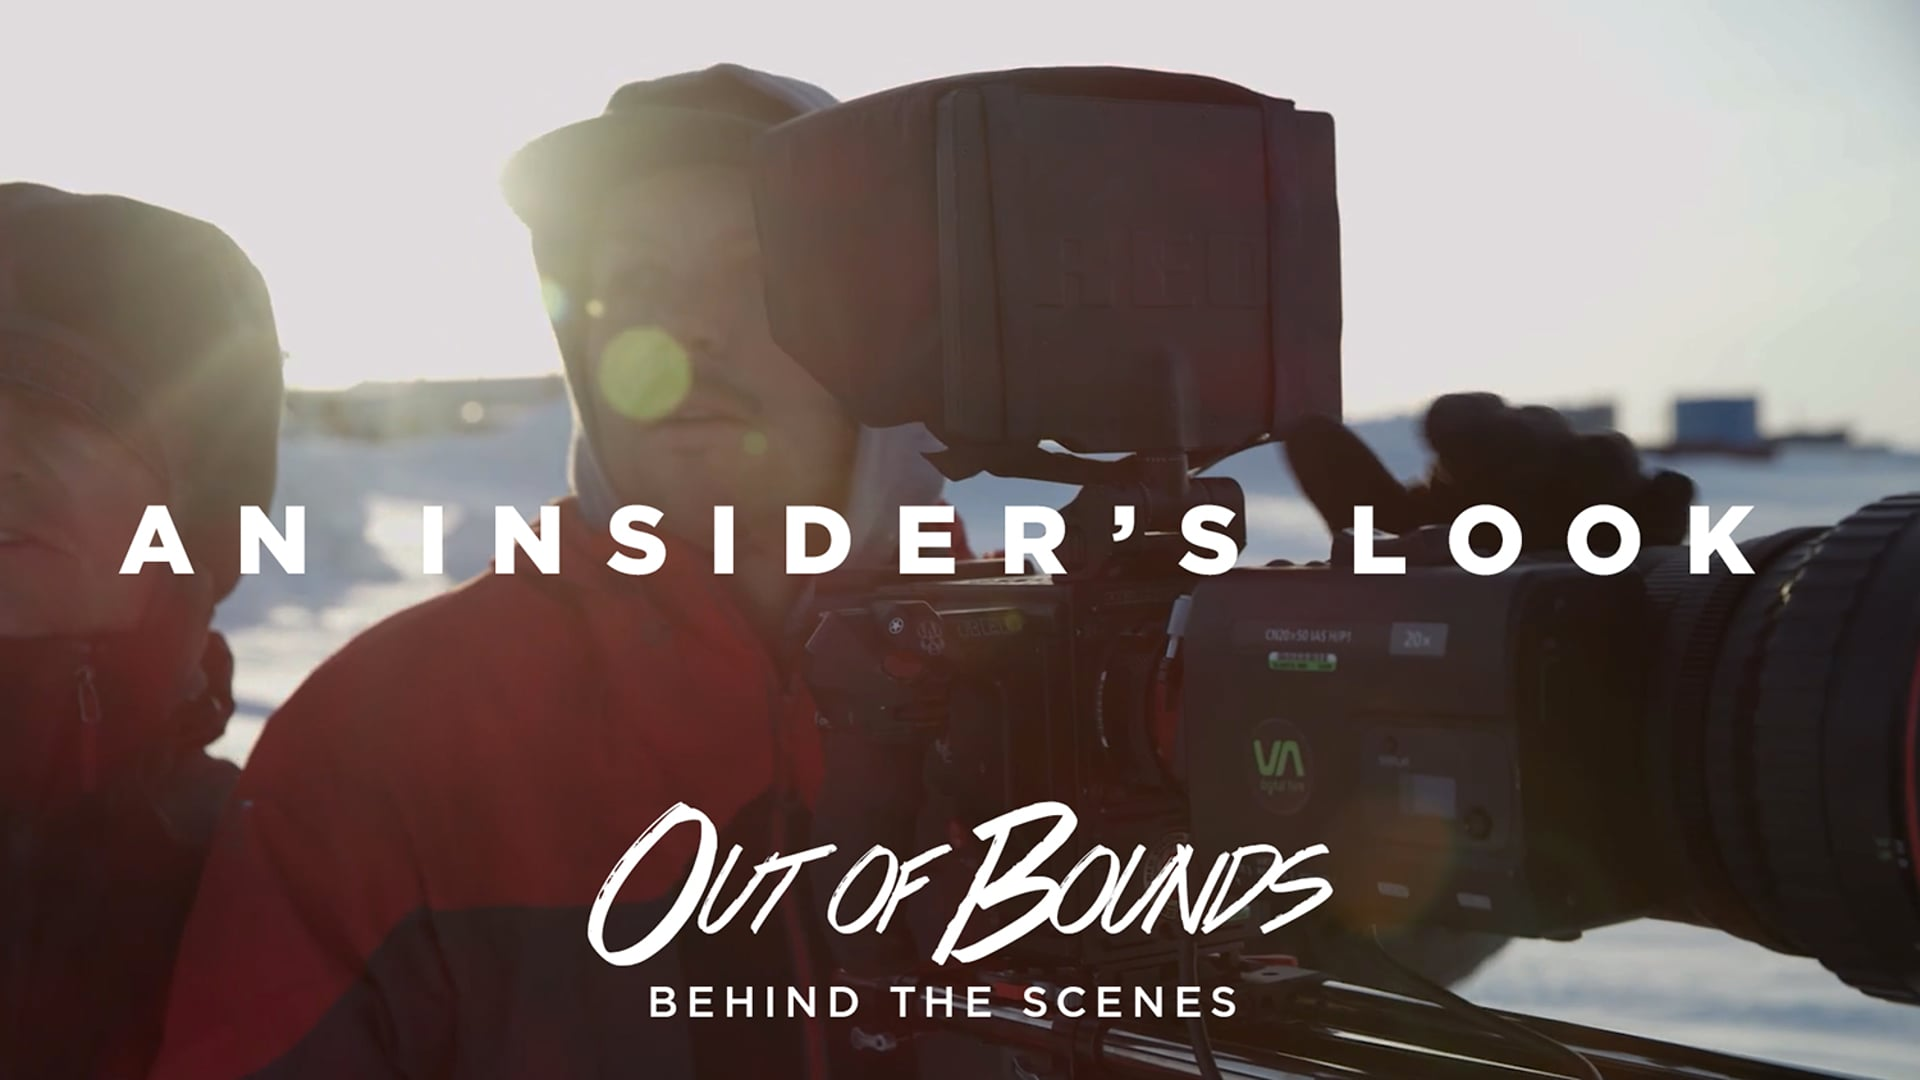 An insider's look behind the scenes of Out of Bounds